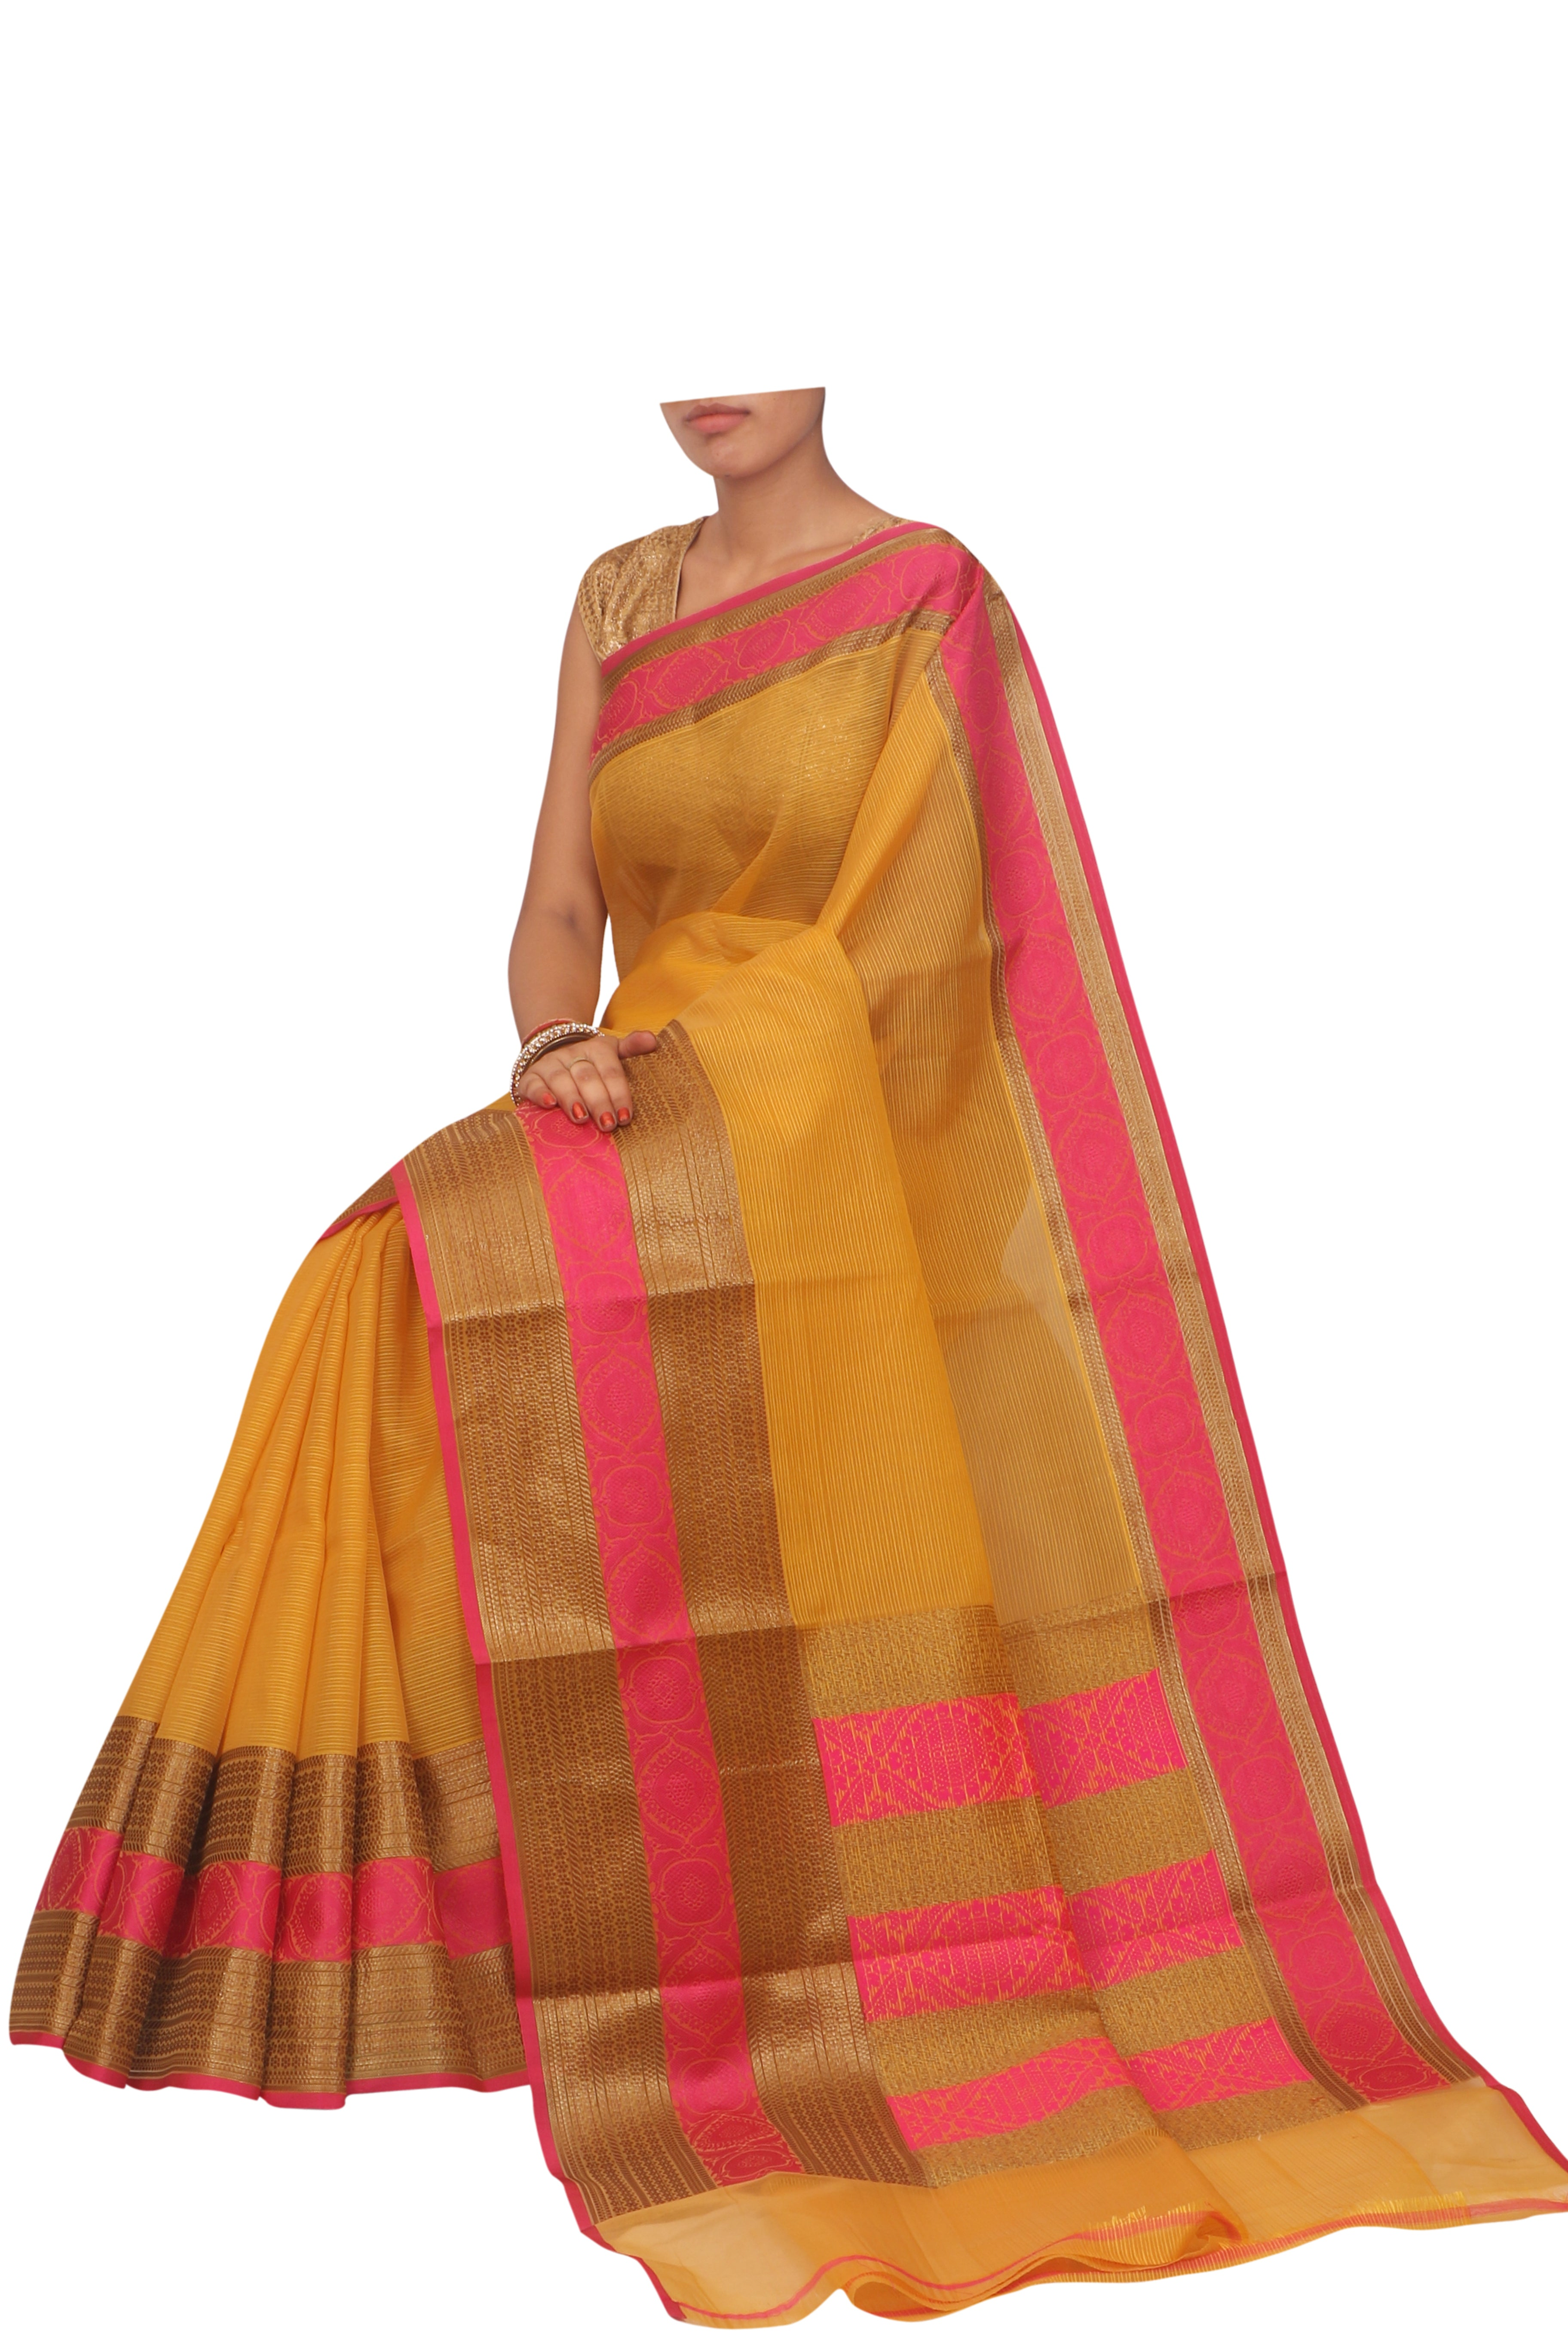 Bright yellow sheer sari with gold and pink border - EthnicRoom